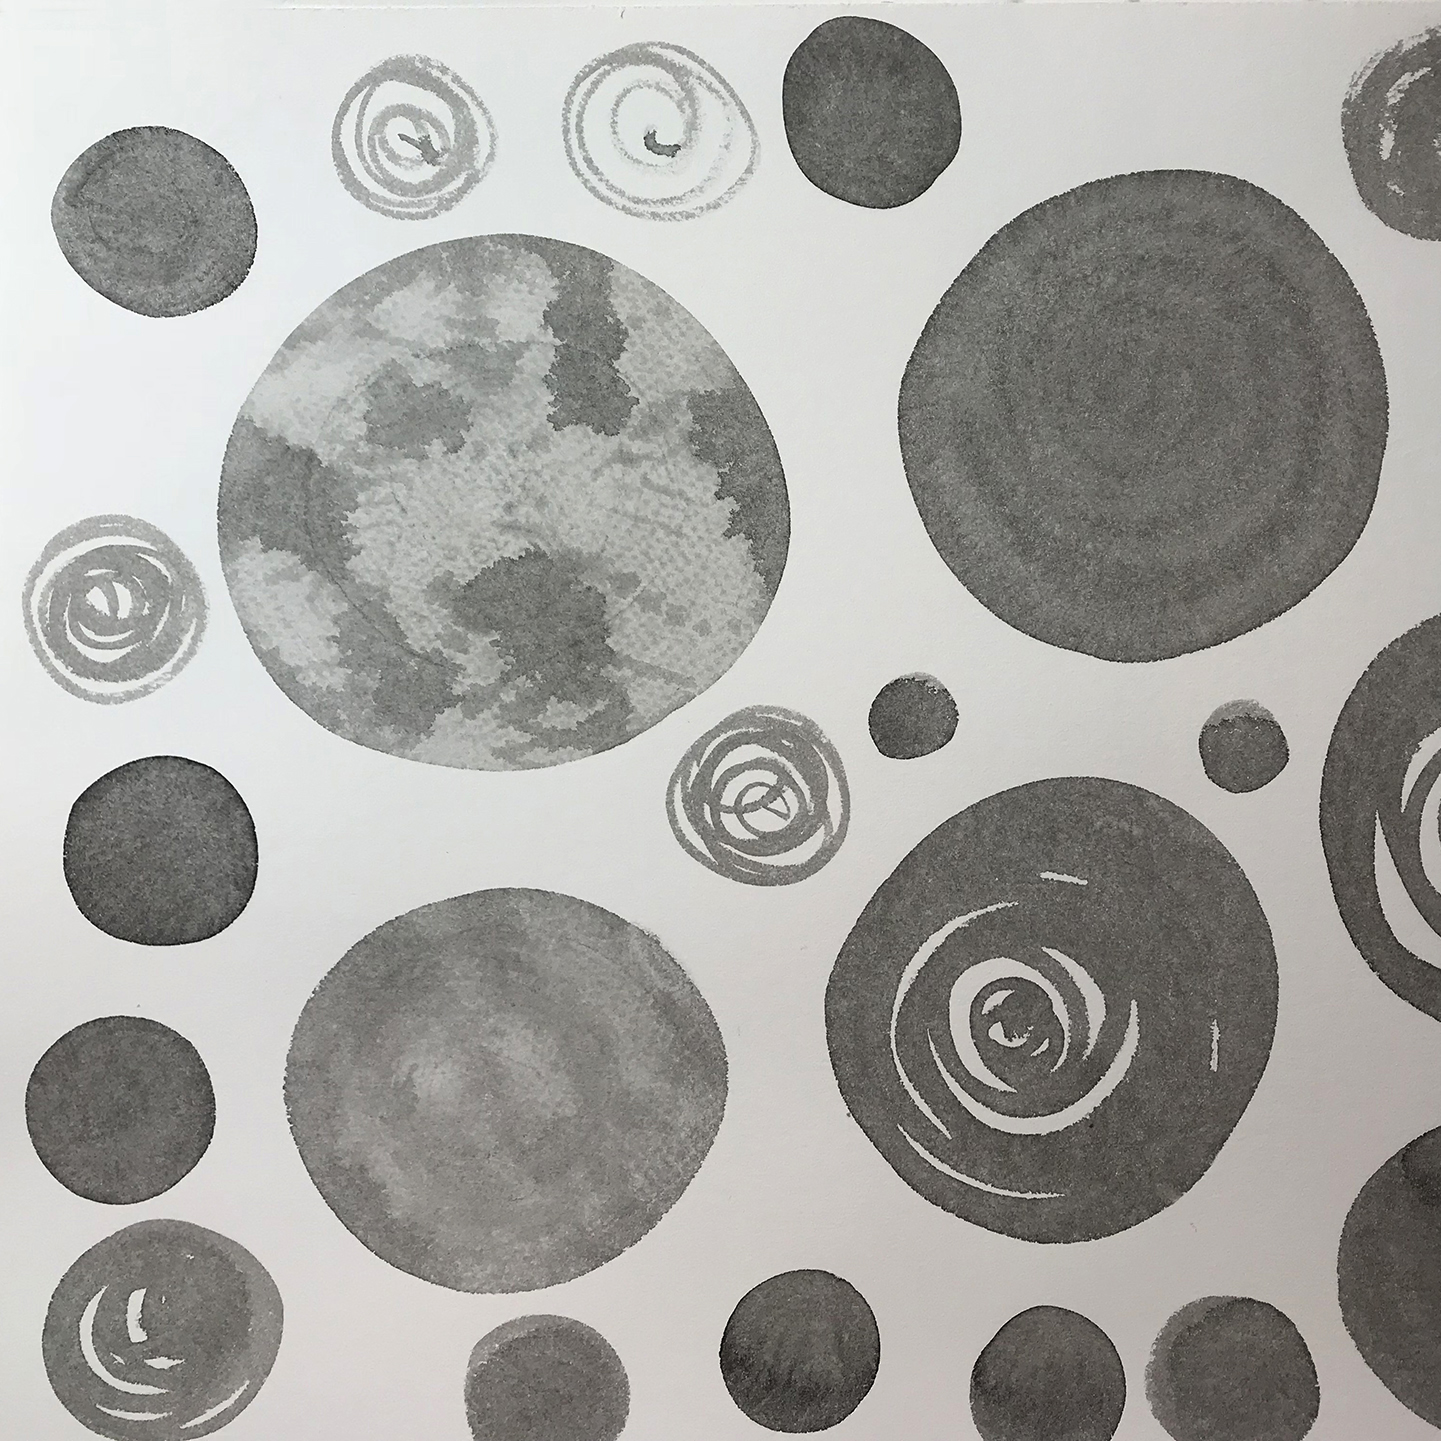 This was a common sight on my drawing board: some of the shapes painted in ink washes, soon to become planets.